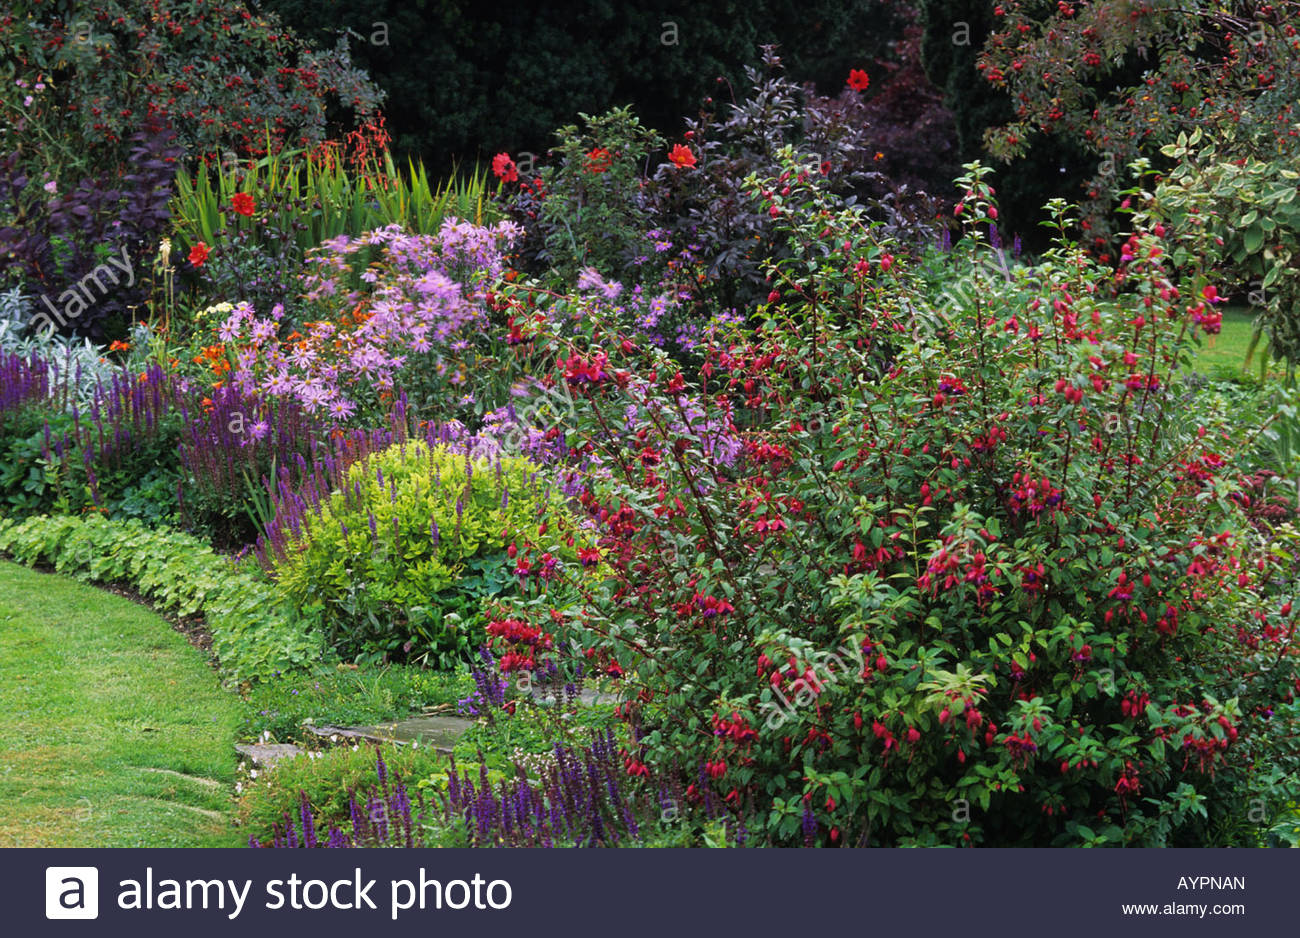 Merveilleux Private Garden Sussex Mixed Late Summer Border With Hardy Fuchsias Asters  Sedums Etc Mixed Late Summer Border September